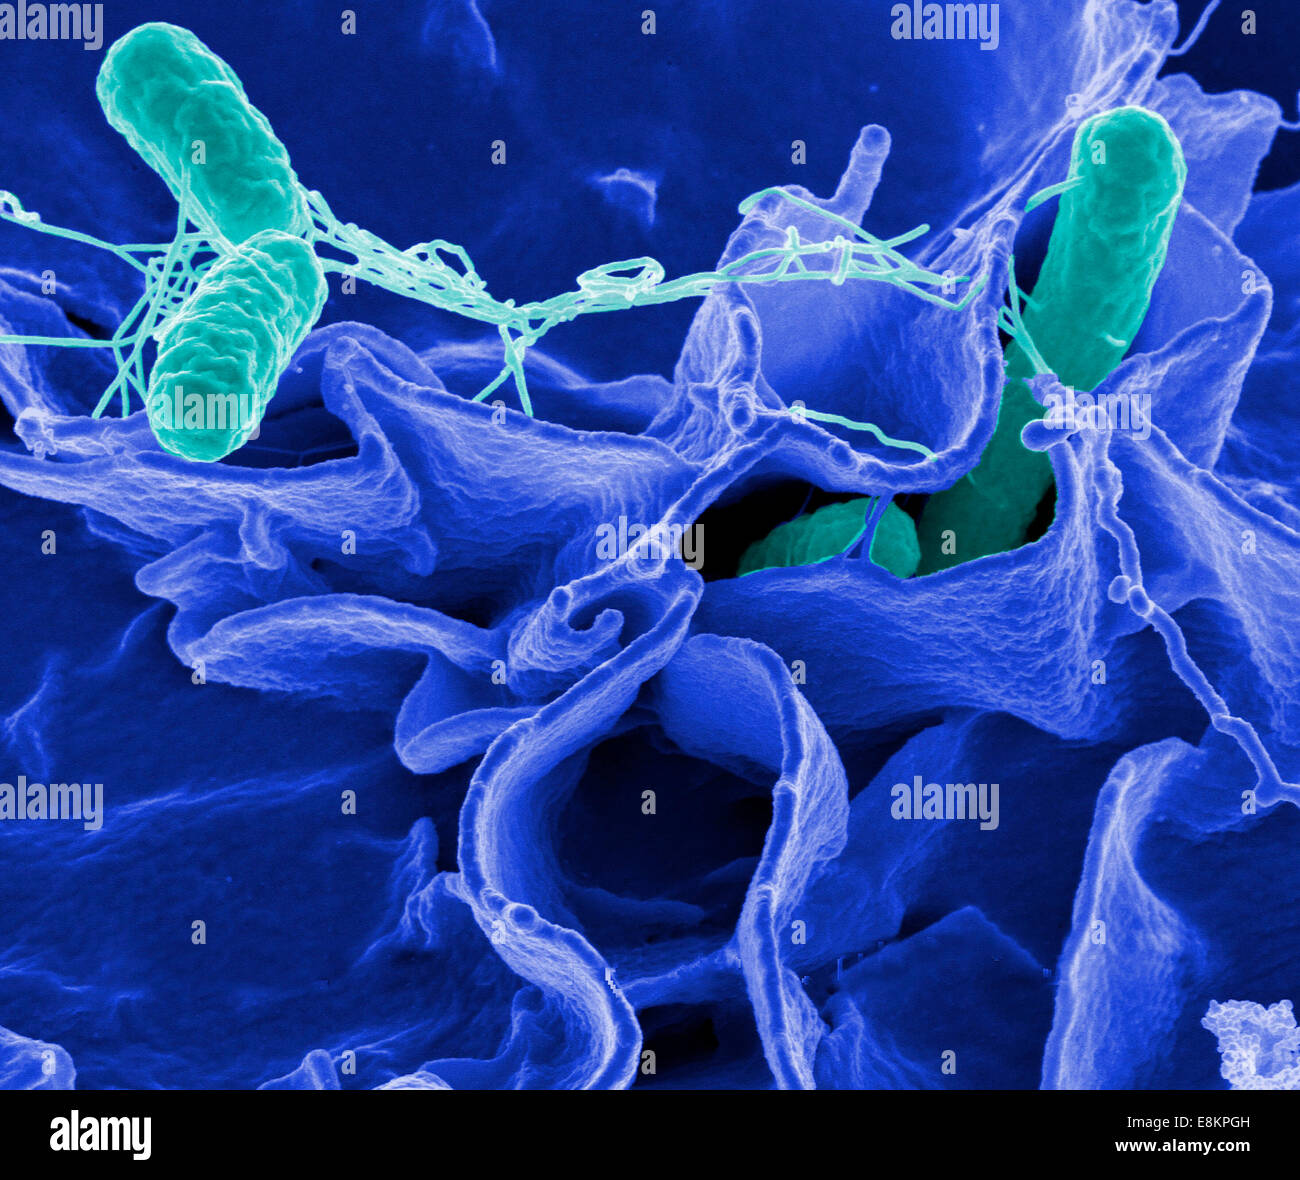 Salmonella bacteria, a common cause of food poisoning, invade an